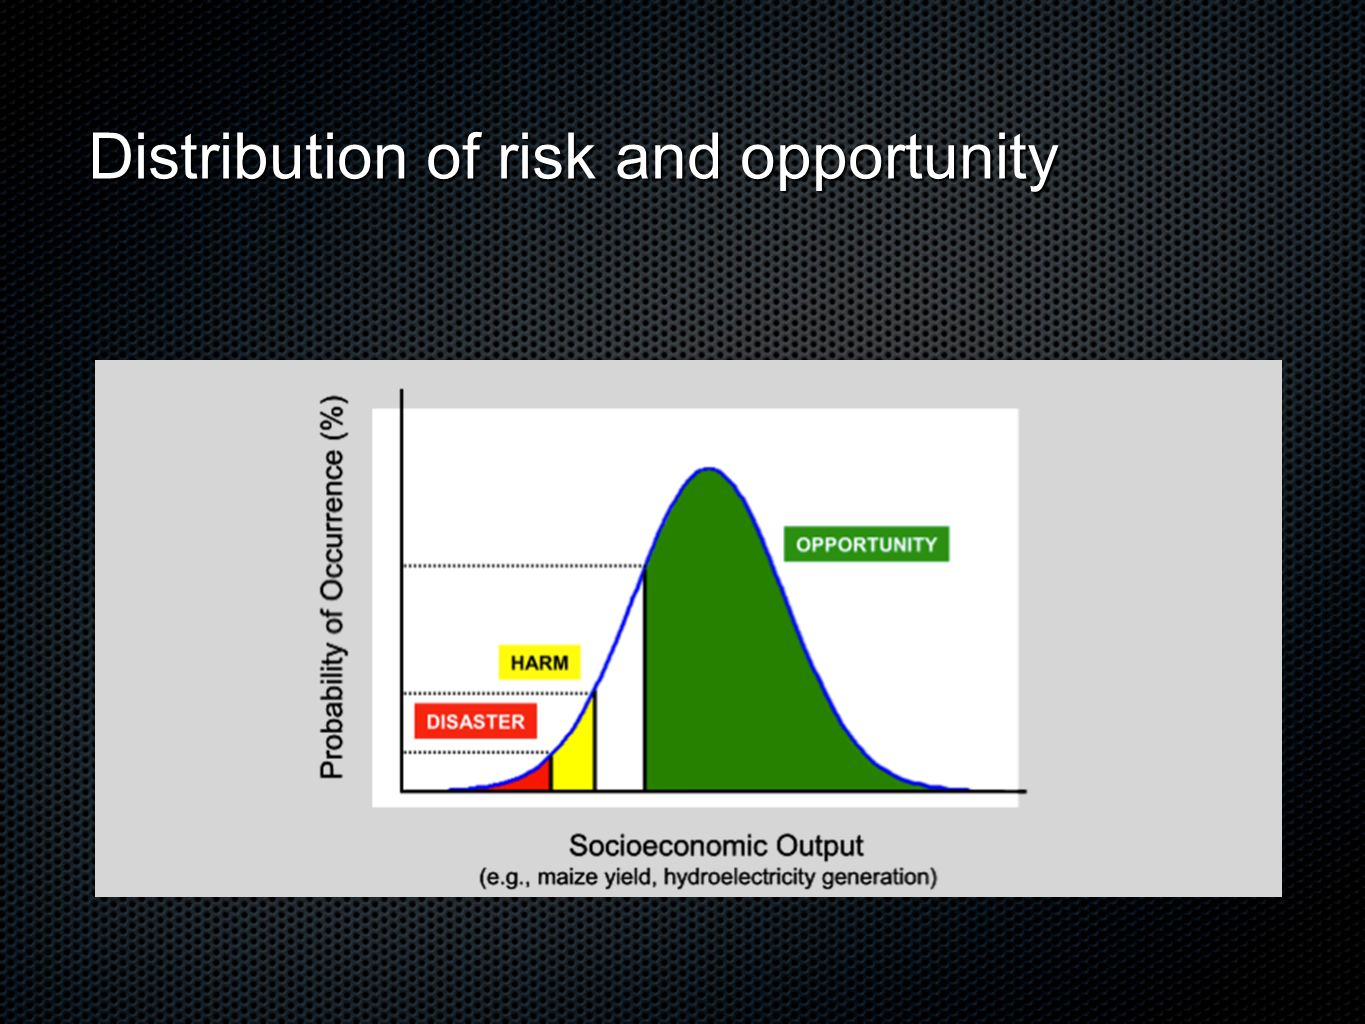 Distribution of risk and opportunity